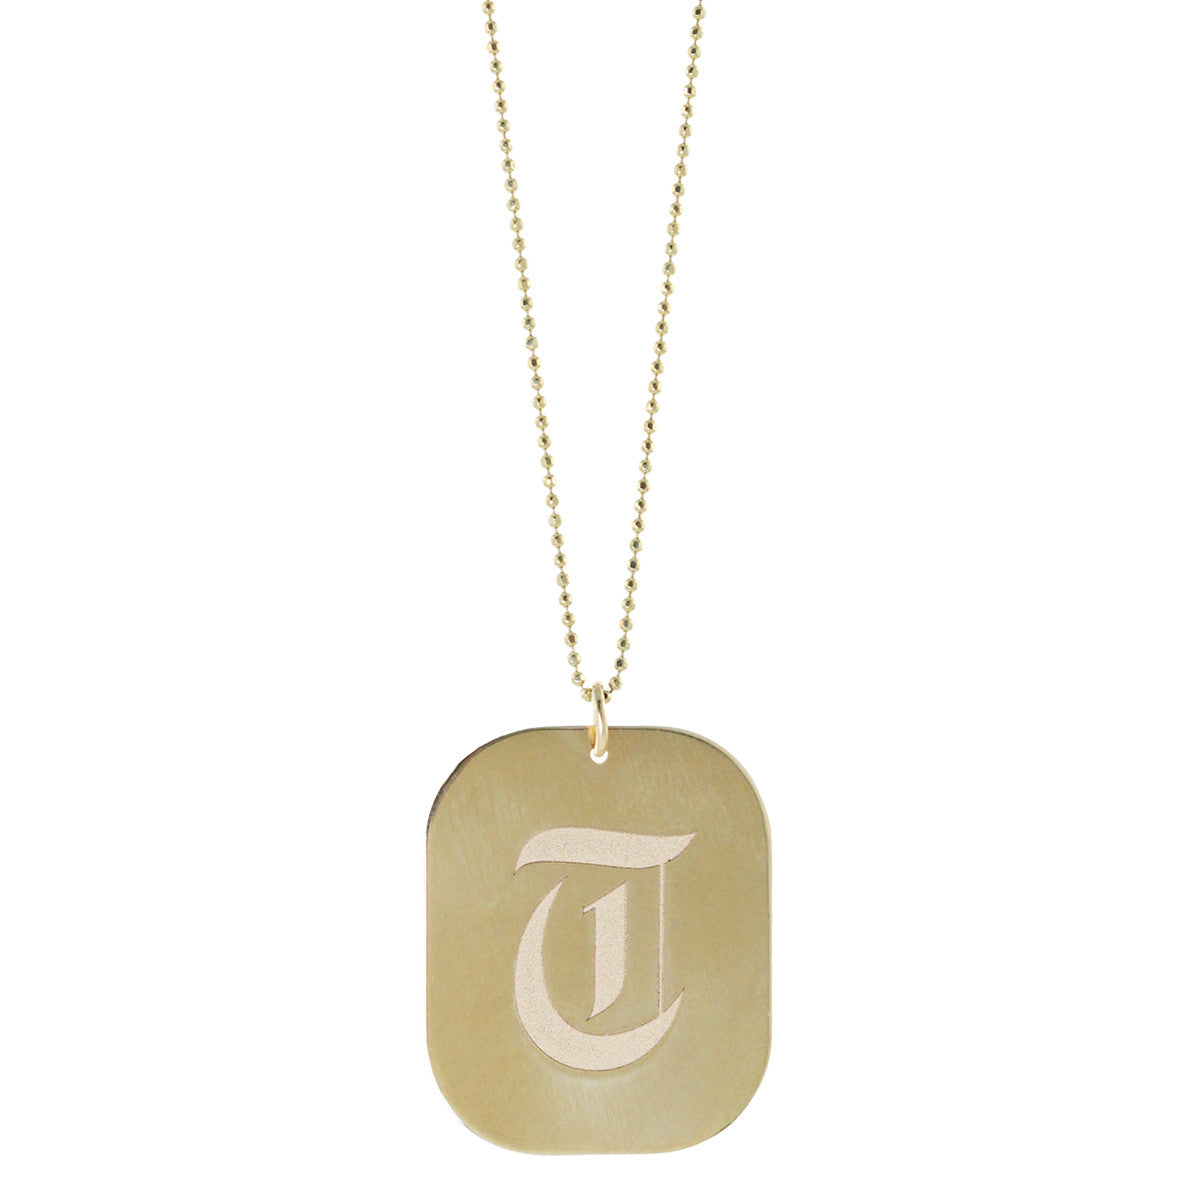 stone triangle jewellery oliver bonas rectangle necklace